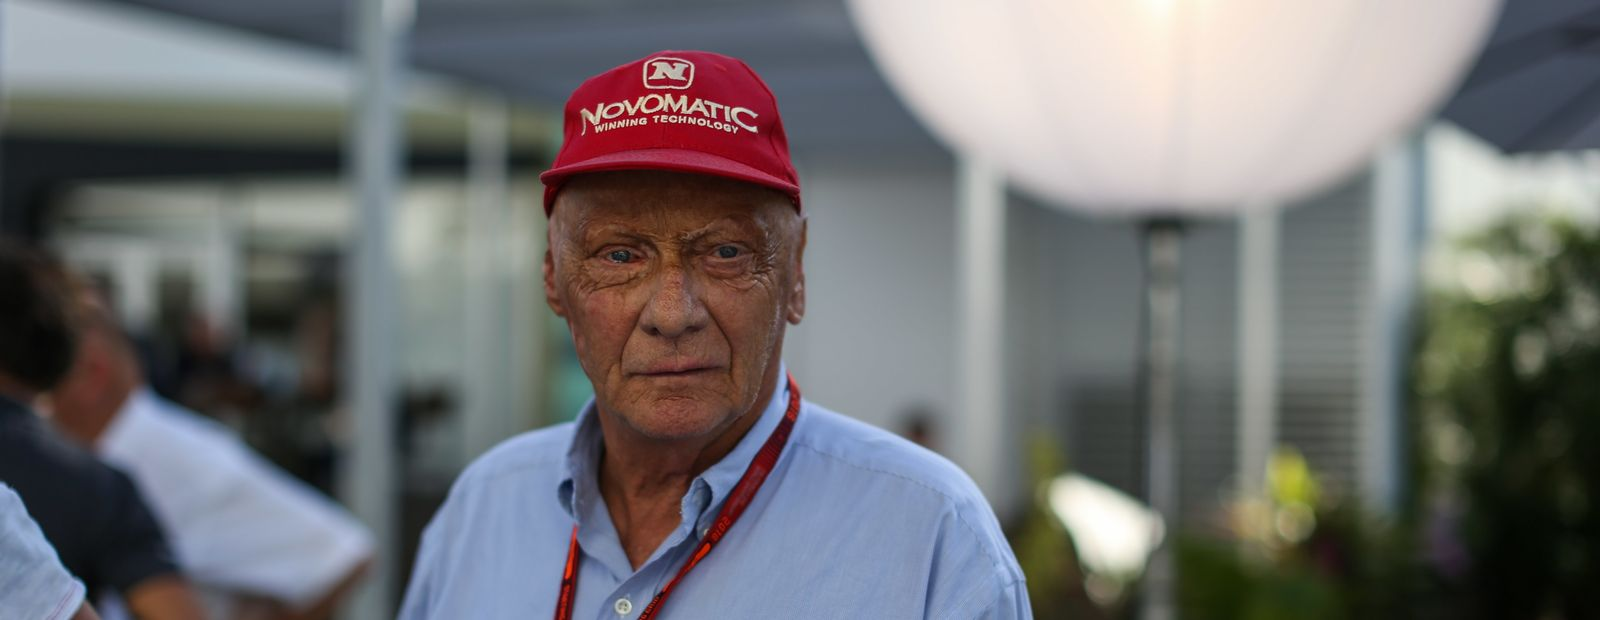 McLaren pays tribute to Niki Lauda